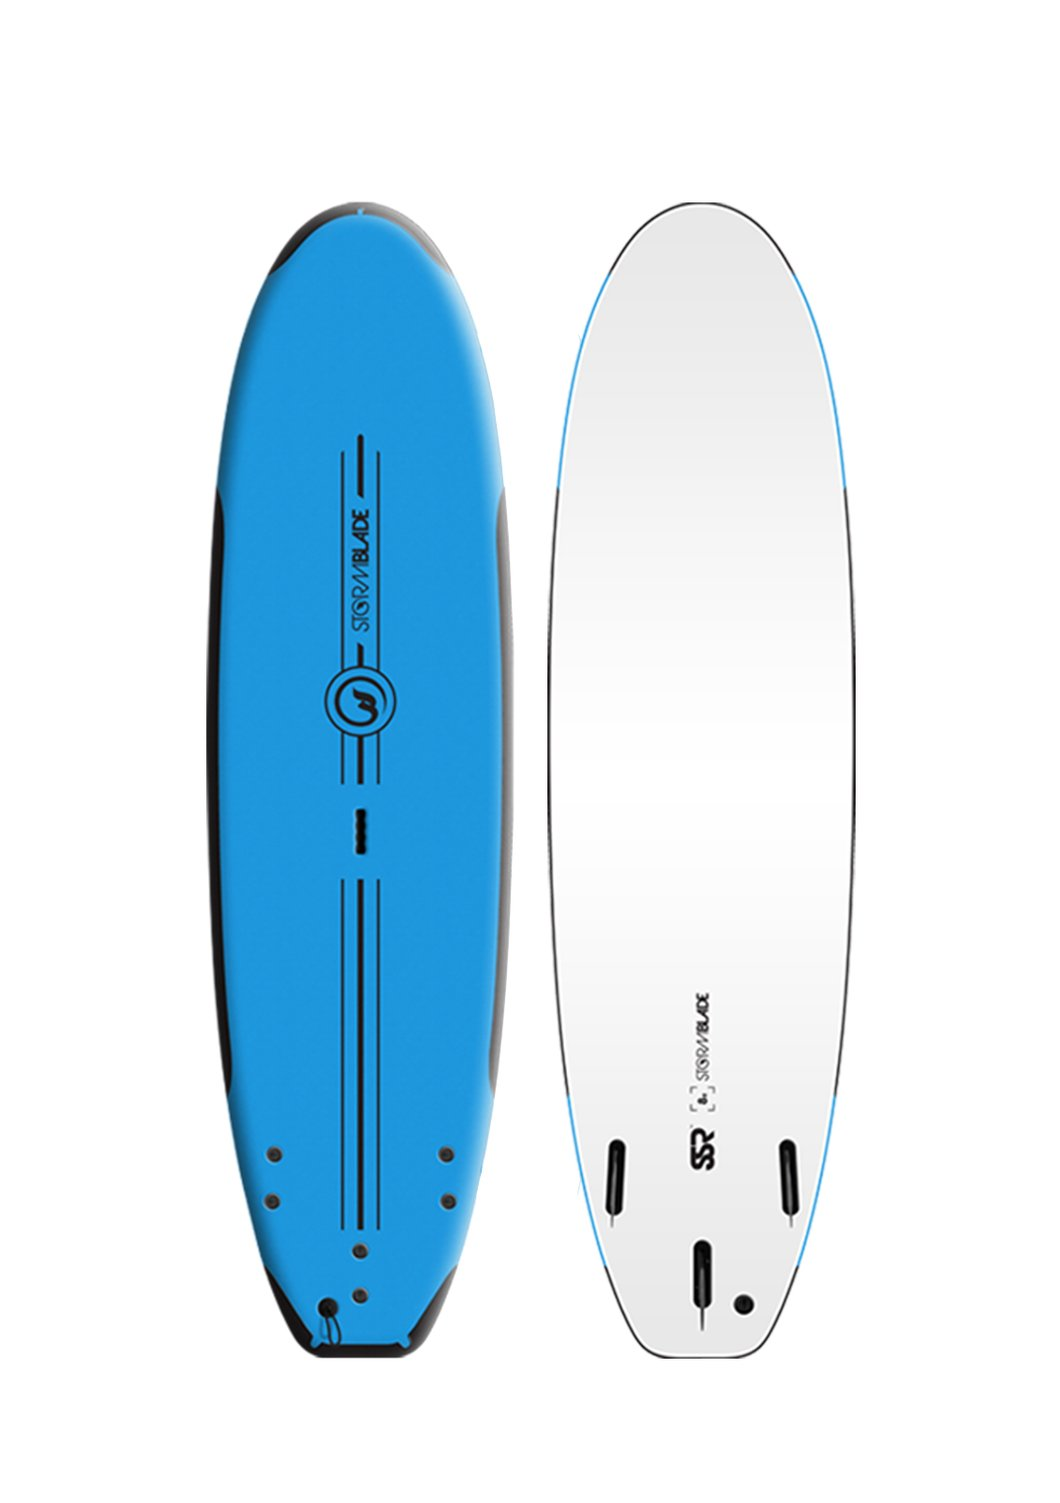 Tabla Surf School Ssr 8ft